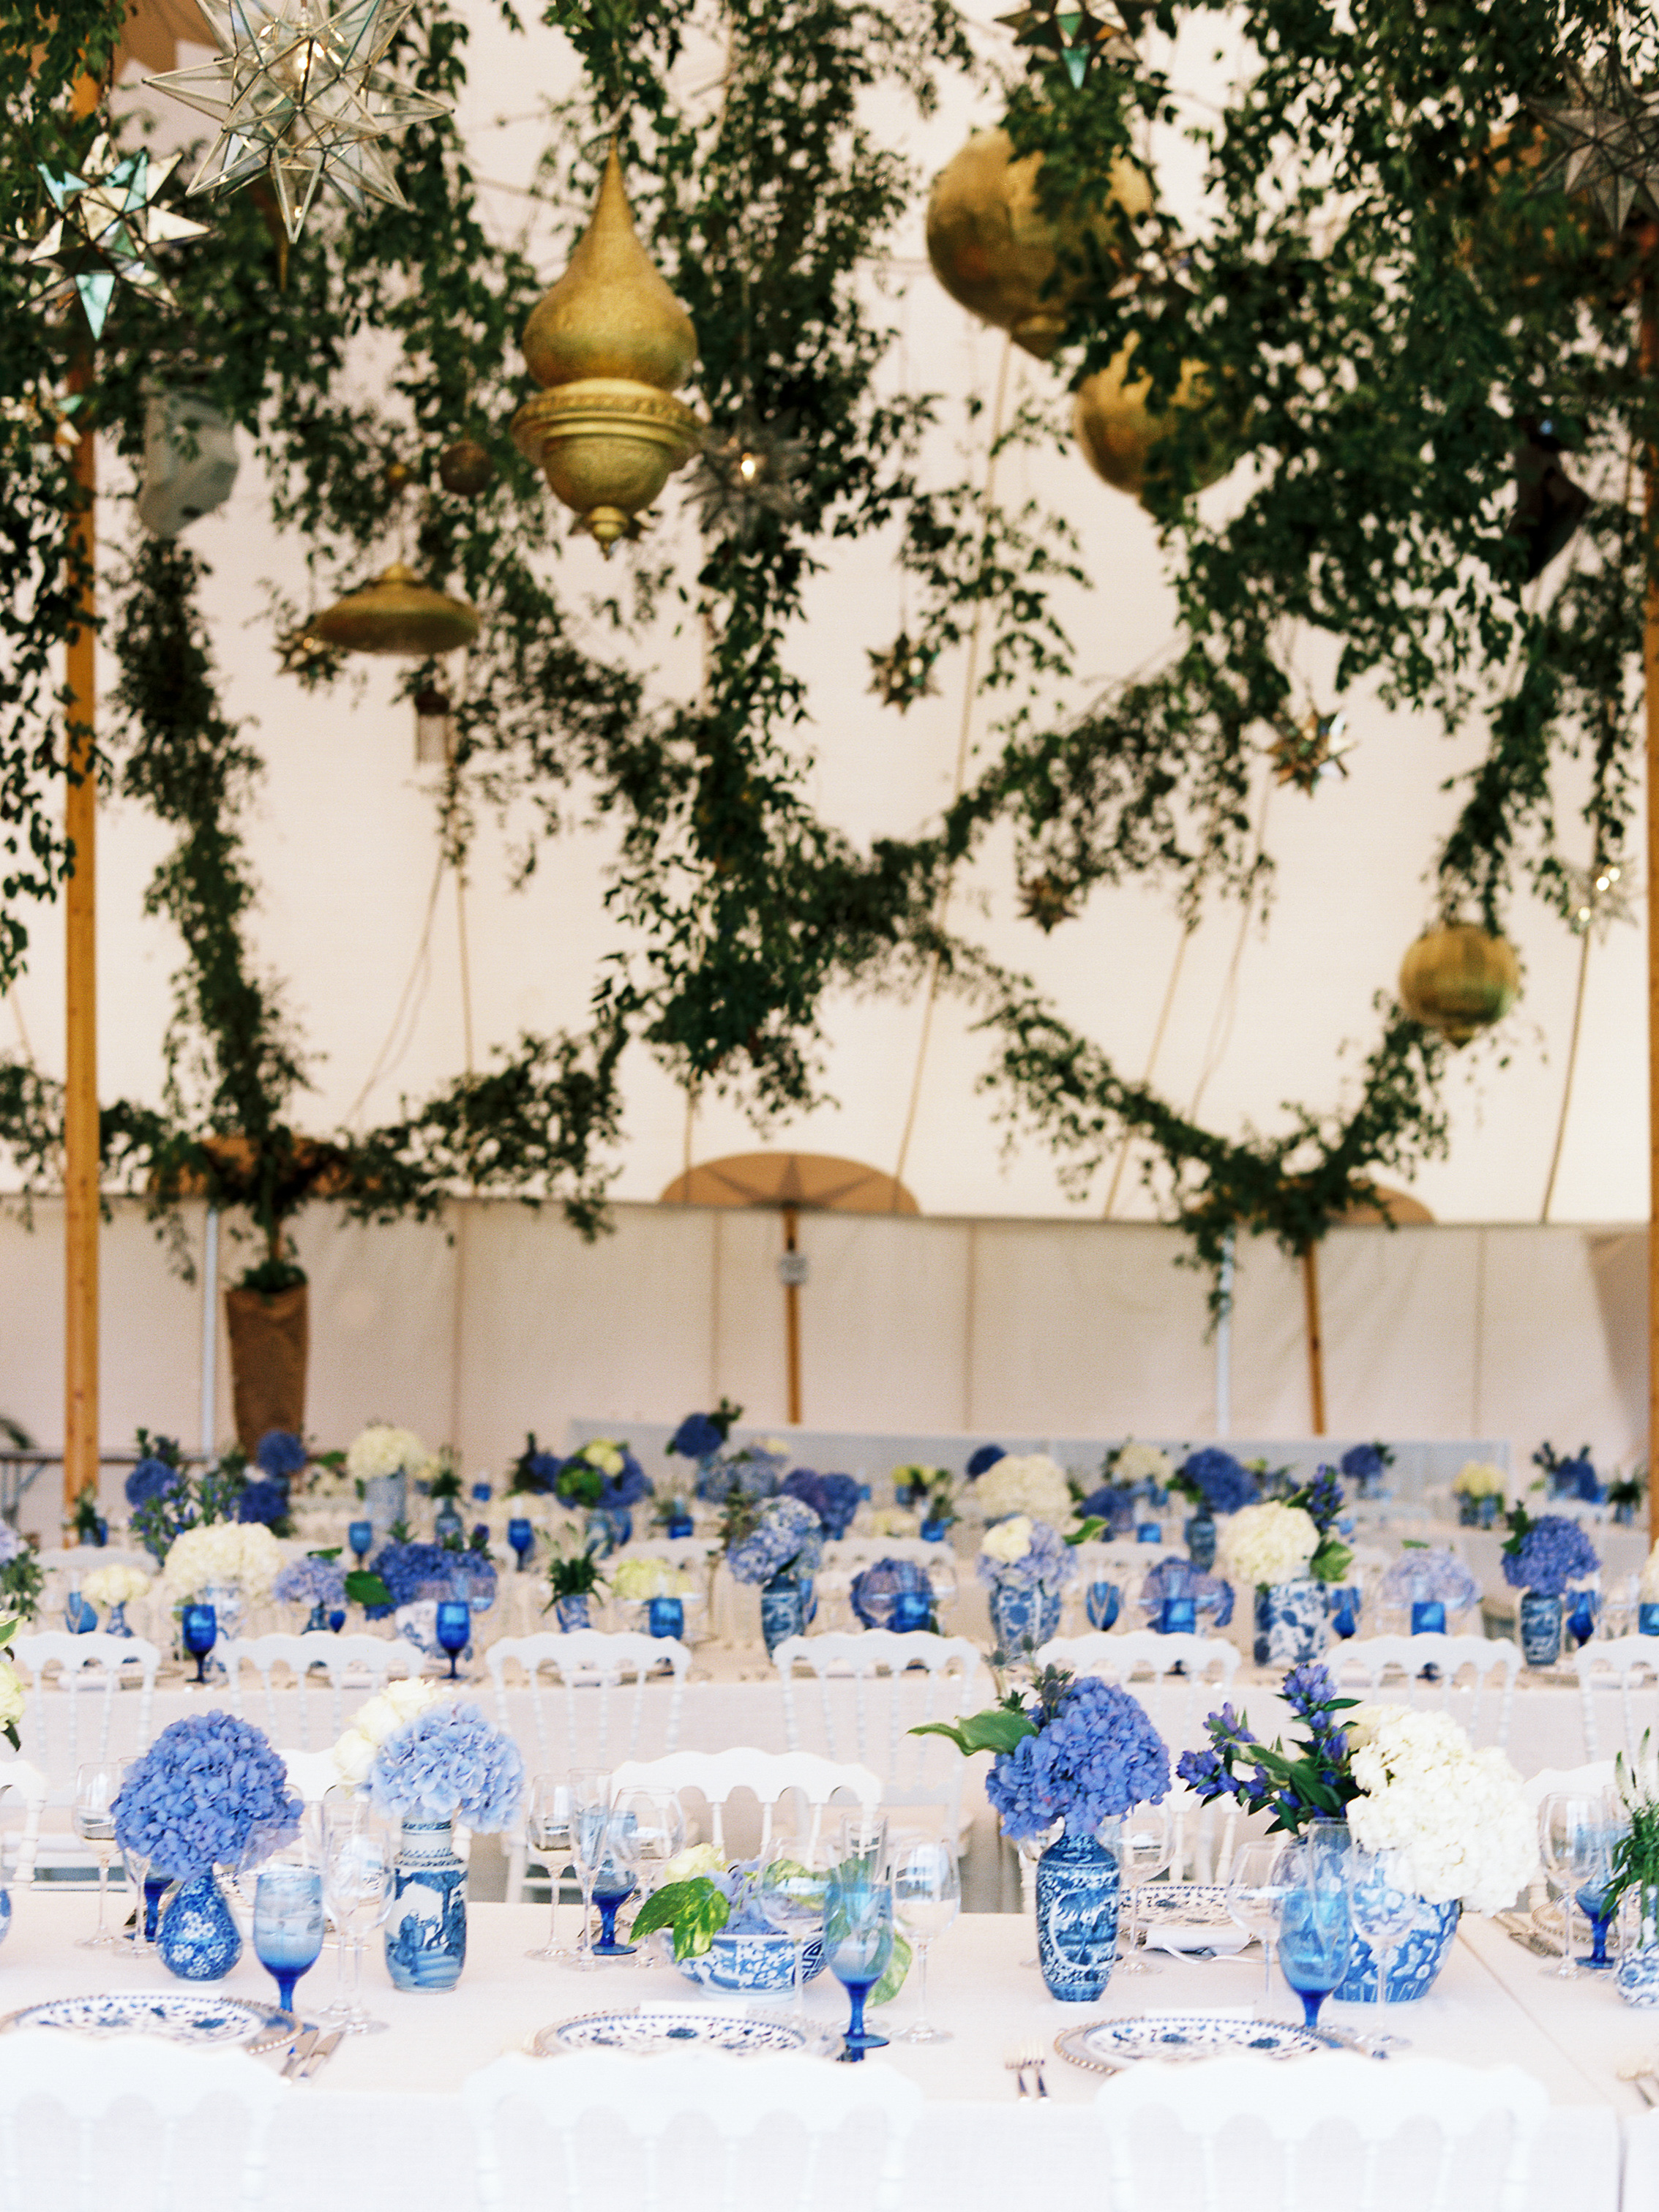 SPERRY TENT WEDDING, BLUE AND WHITE WEDDING, CHINOISERIE ,